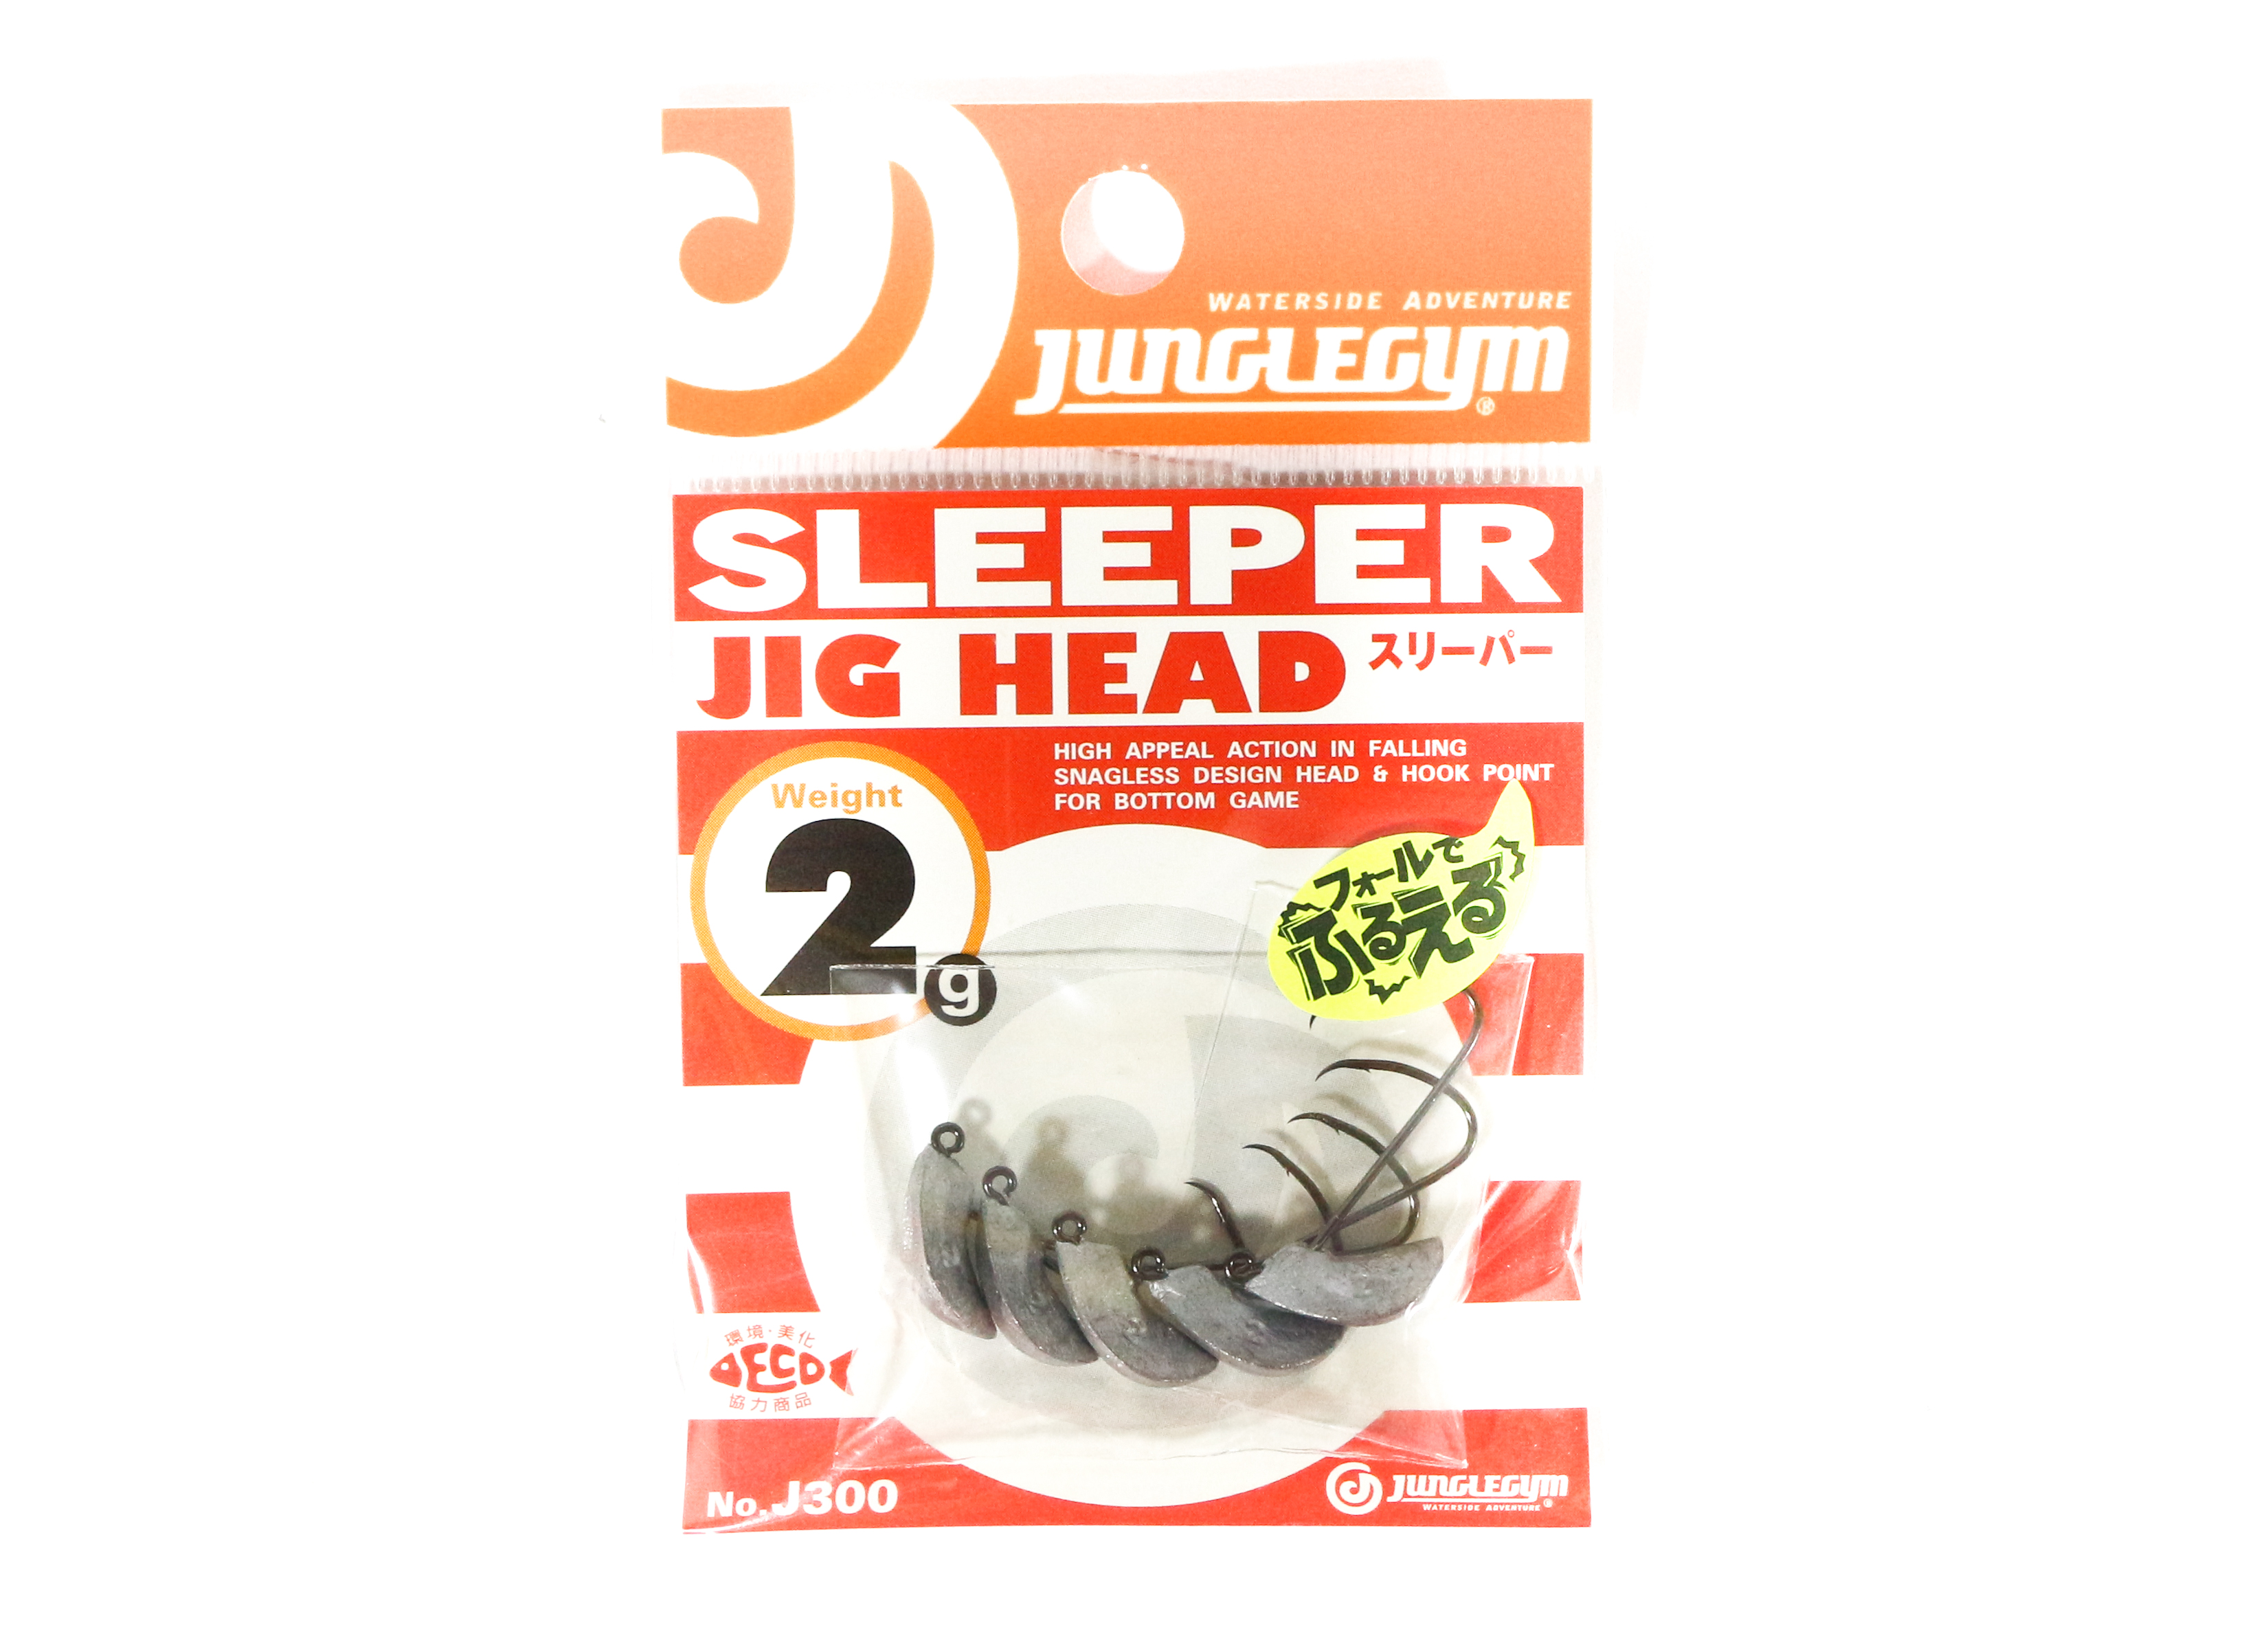 Jungle Gym J300 Jig Head Sleeper 2 grams Hook Size 5 (0605)